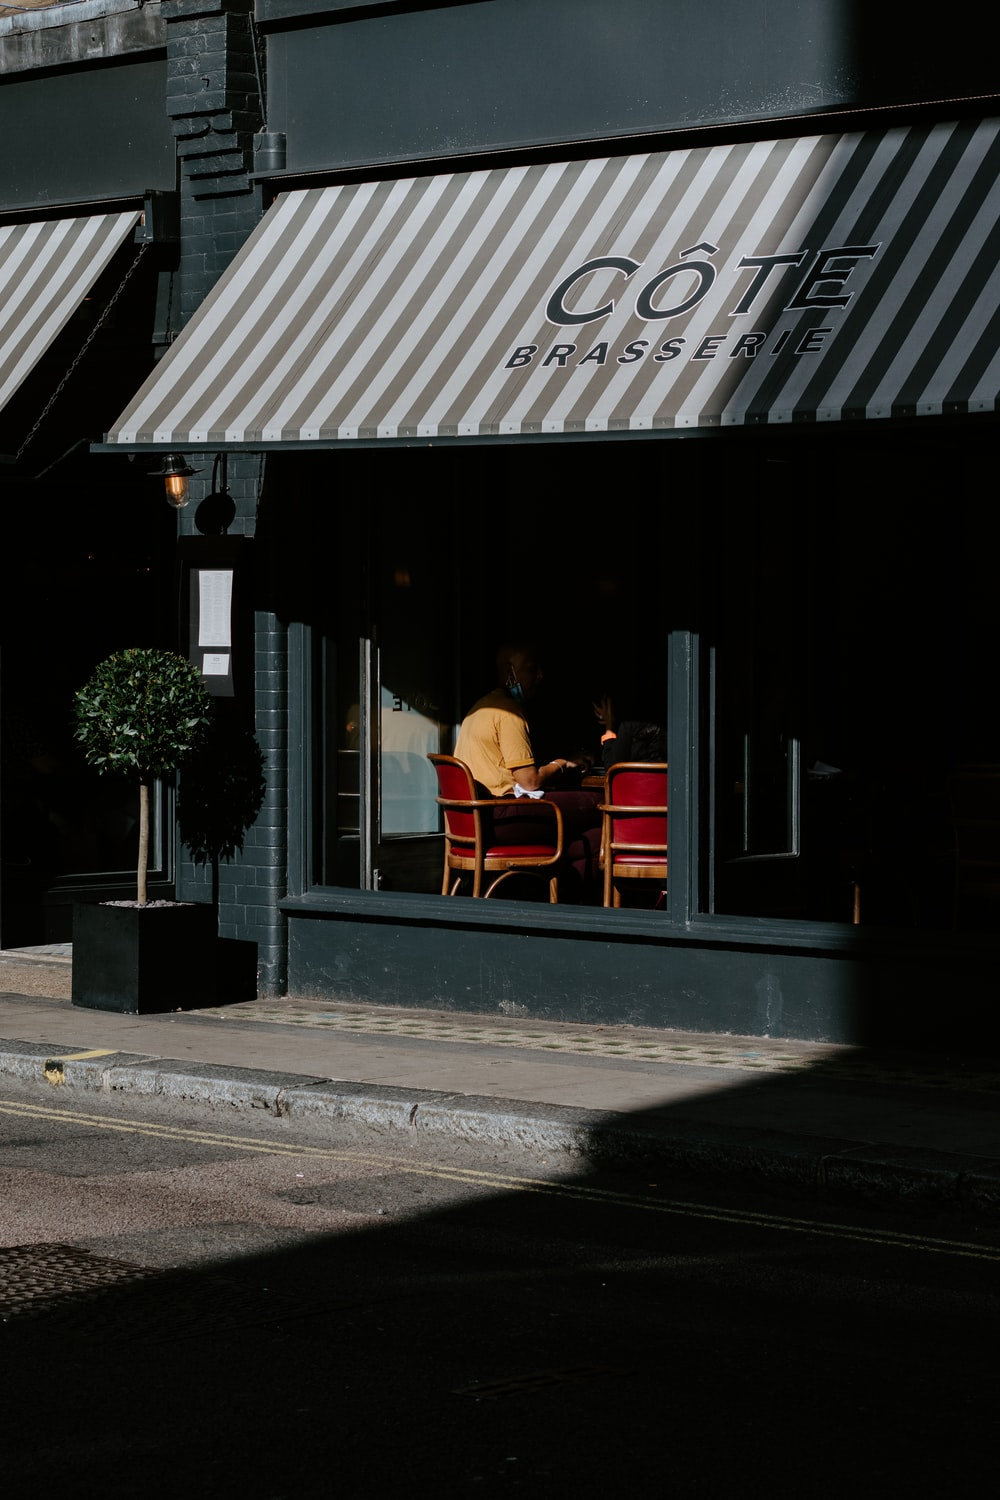 2 person sitting on chair in front of black and white store during daytime